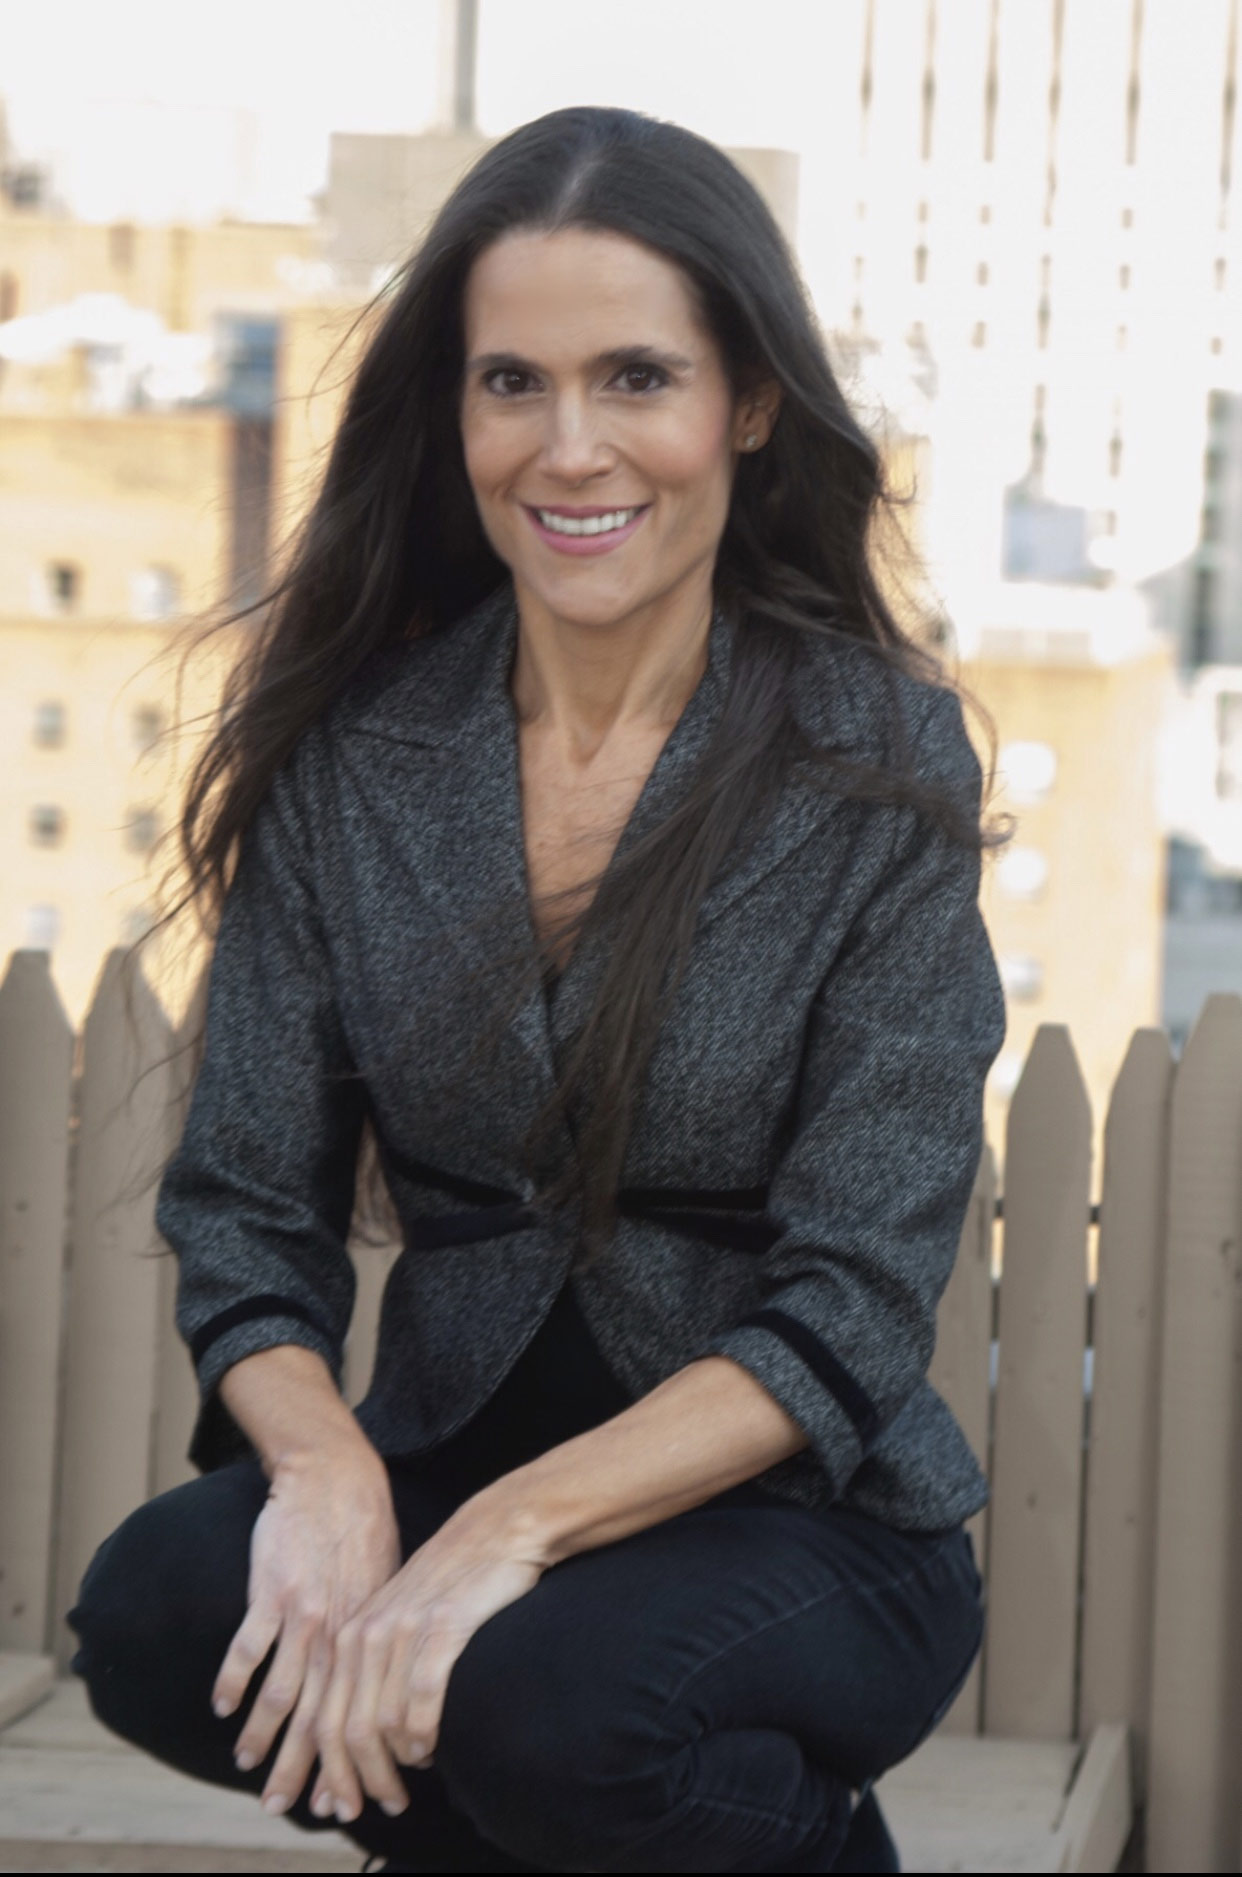 Dr. Alison Mitzner in gray suit on New York City rooftop, a board certified pediatrician and family wellness expert